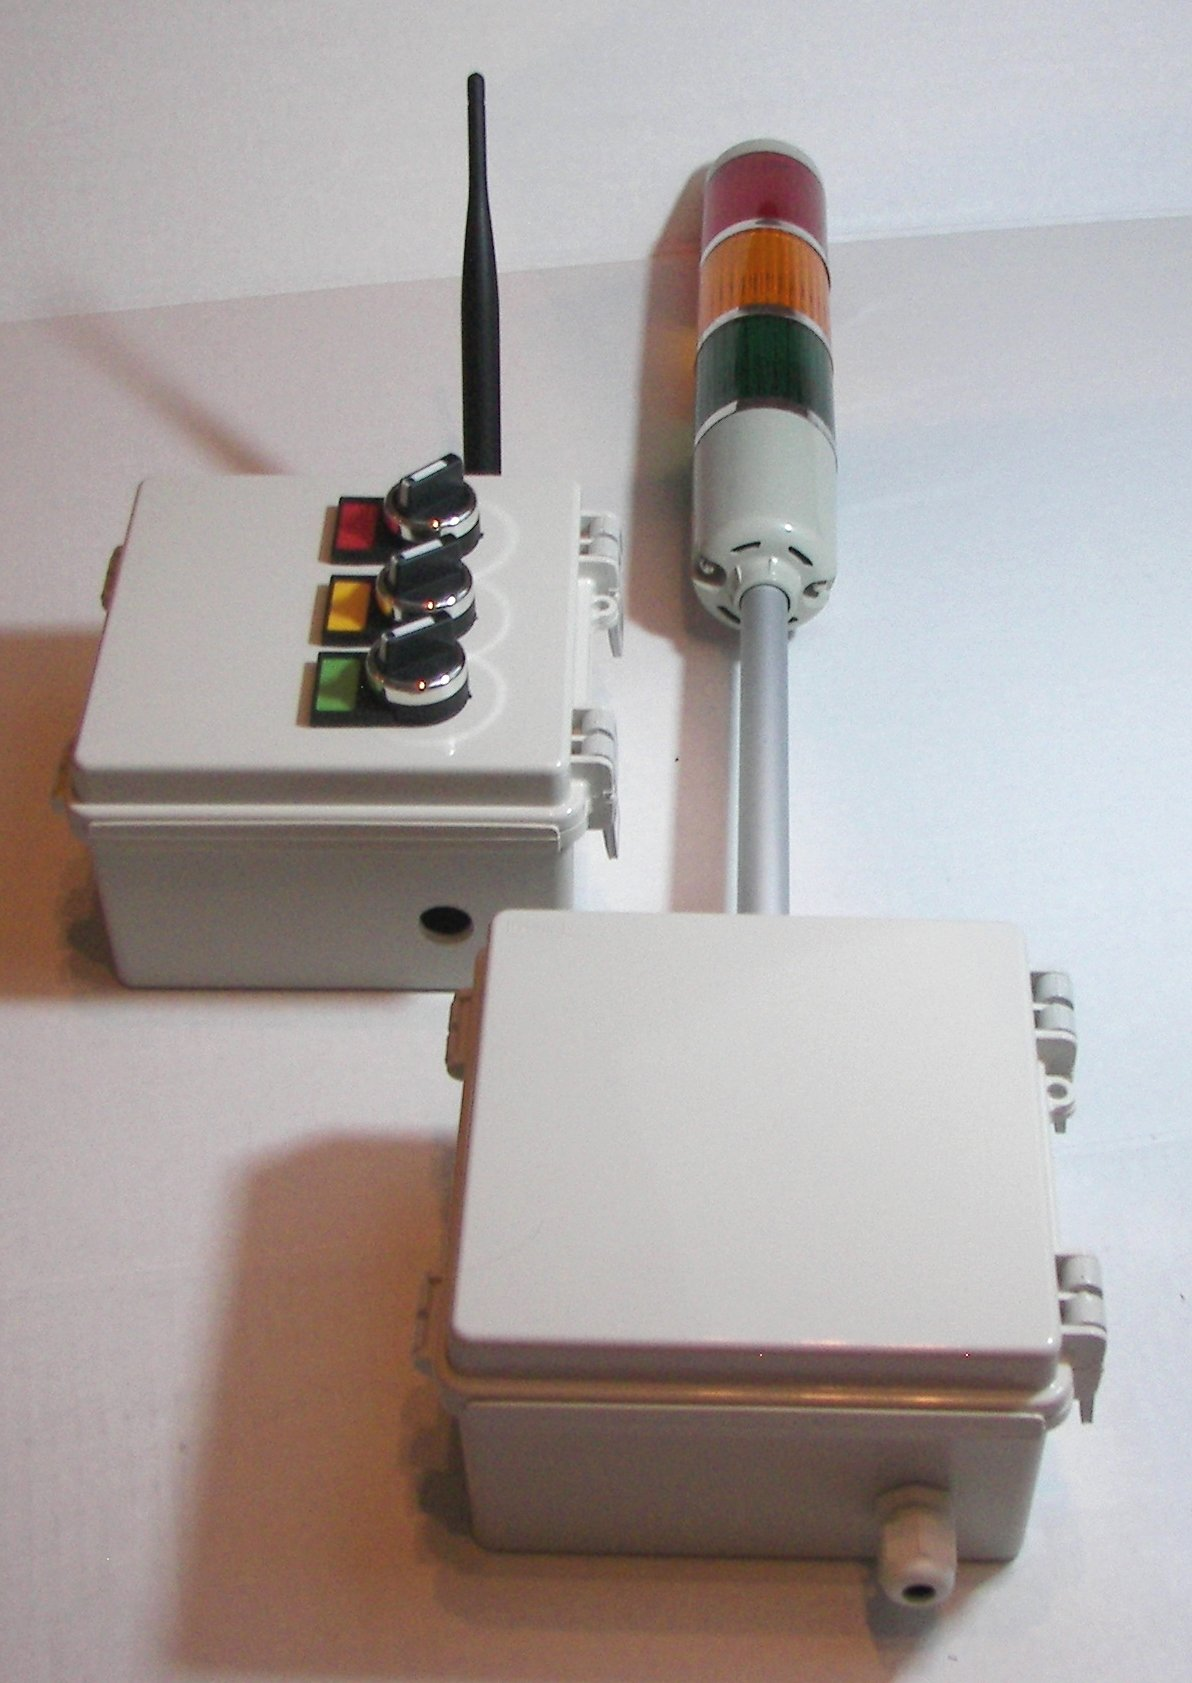 Wireless Tower Light Indicators / Switch Control Box